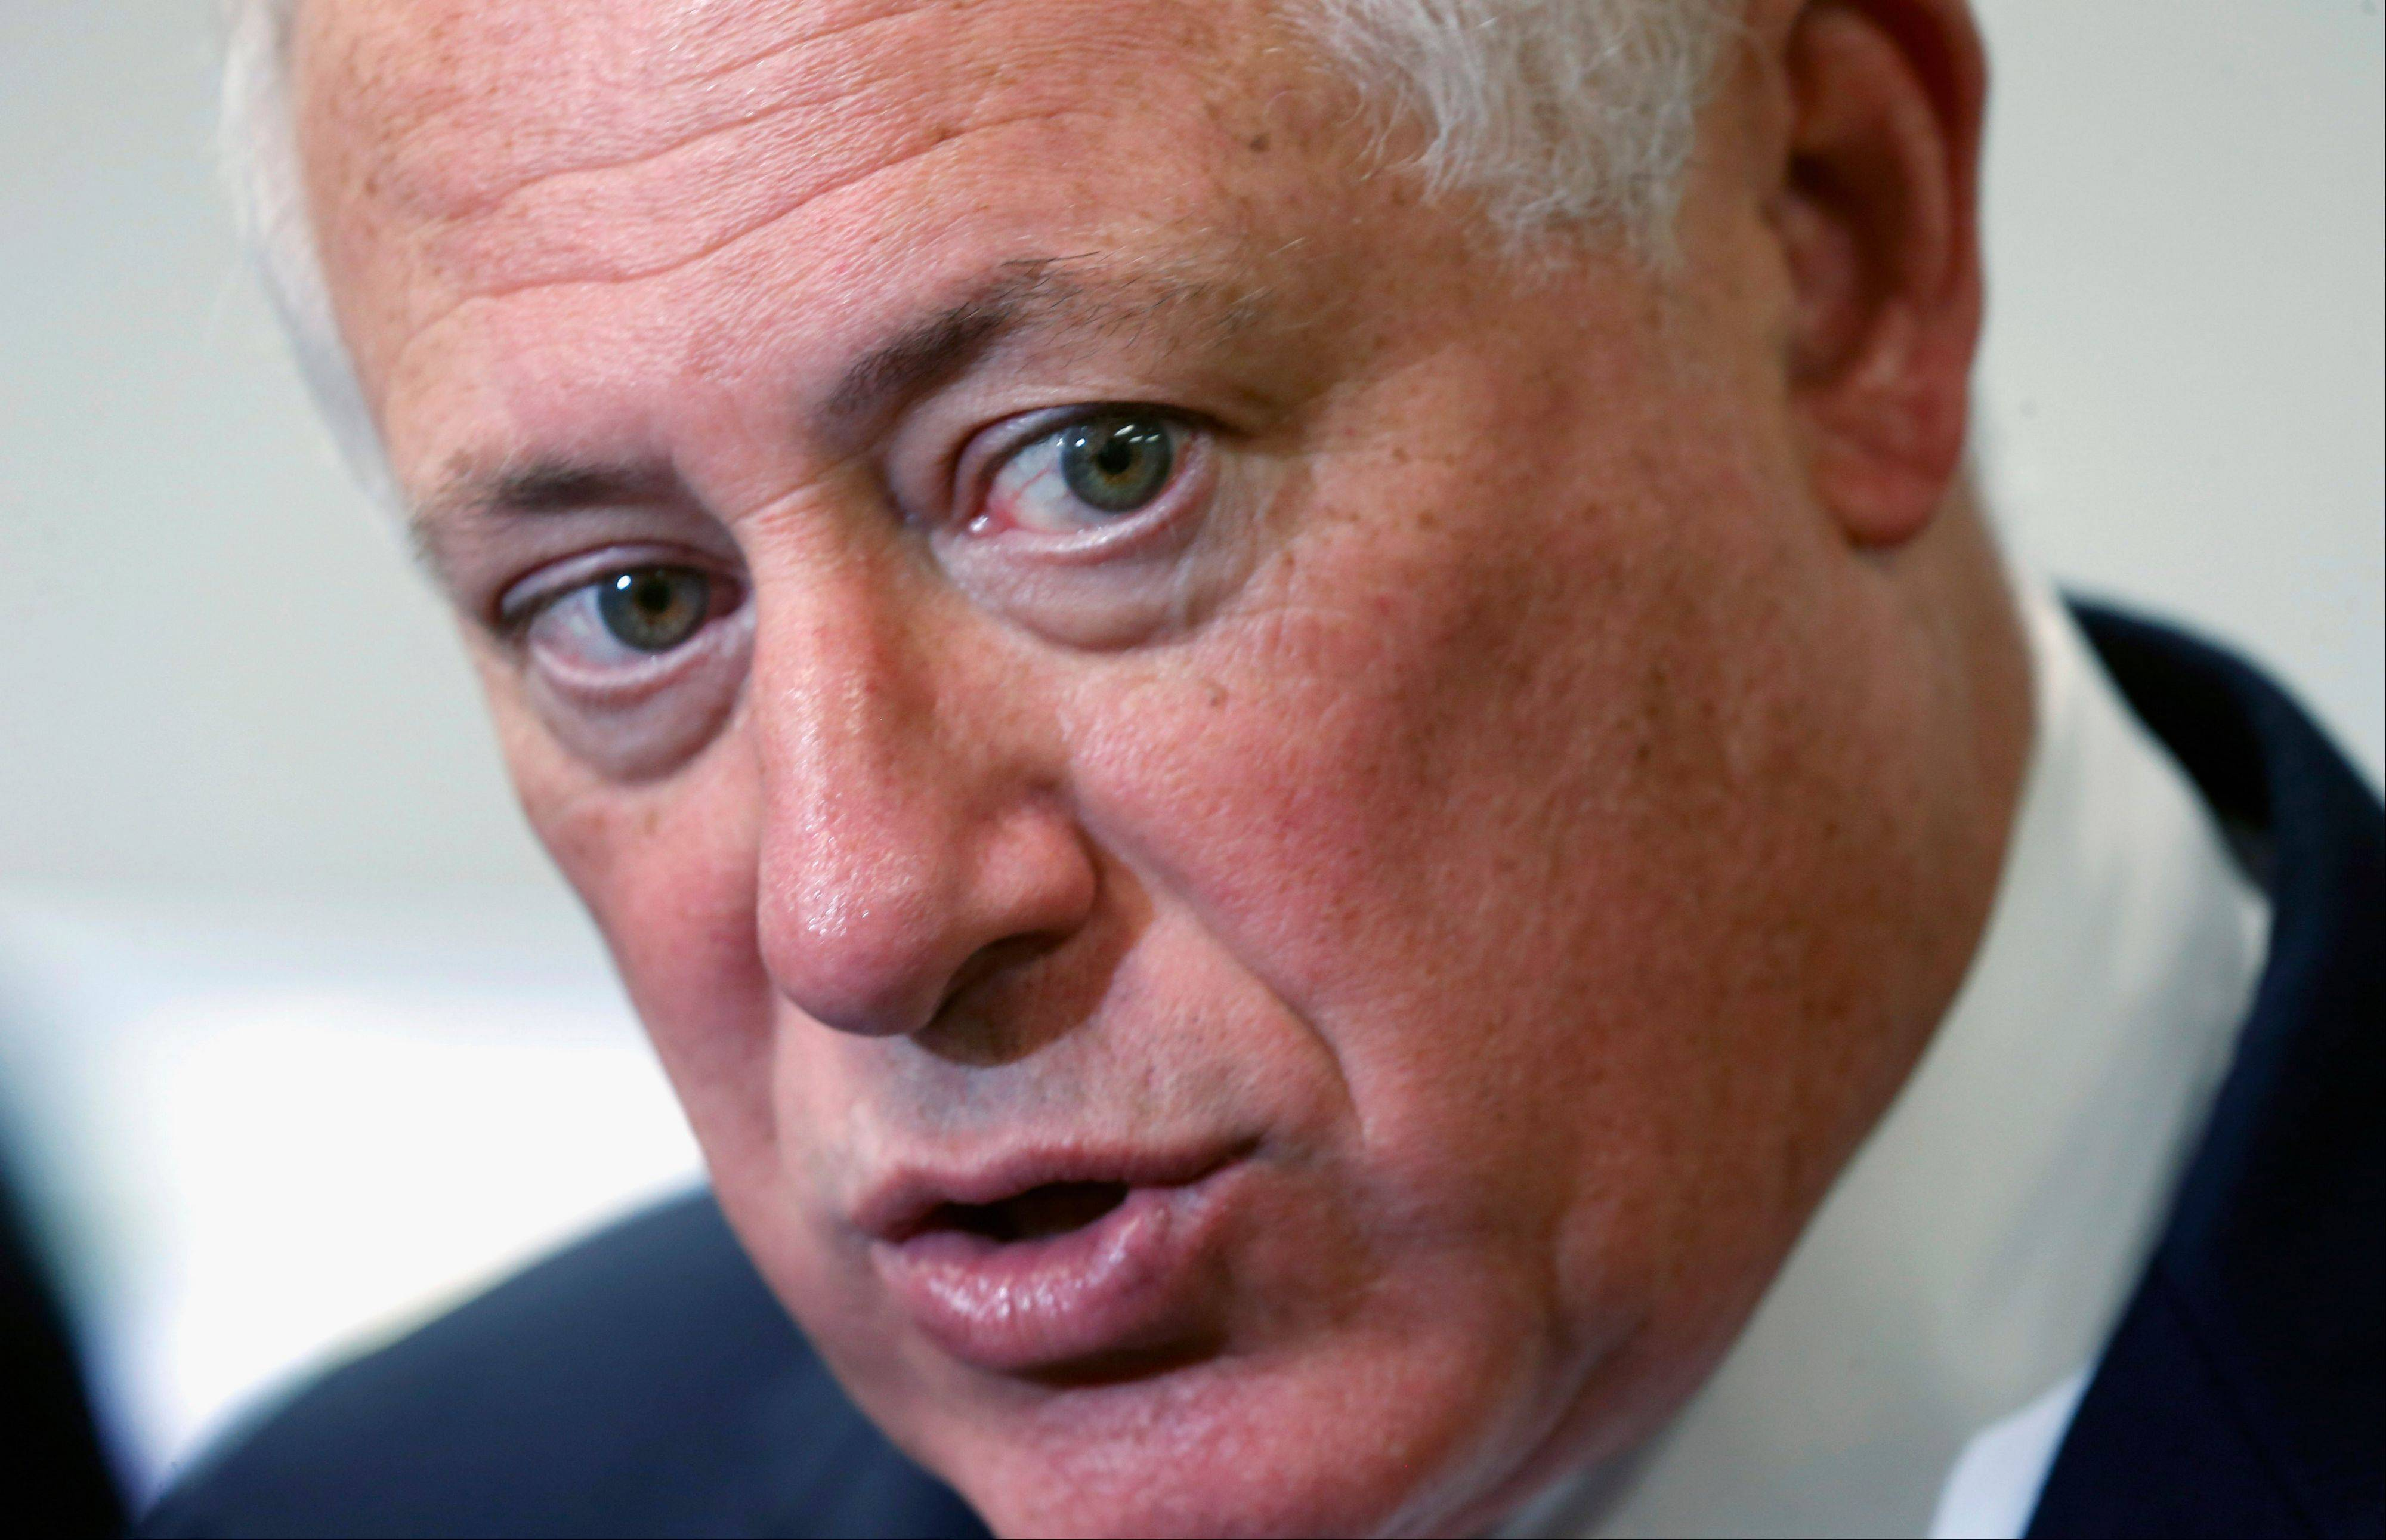 In this Oct. 24file photo, Gov. Pat Quinn responds to a question about the ongoing legislative issues in Springfield, after a visit to a Wheeling high school. The Quinn administration wants lawmakers to approve $221 million in extra funds to spend this fiscal year, a request that follows the $35 billion budget approved by the legislature in May.